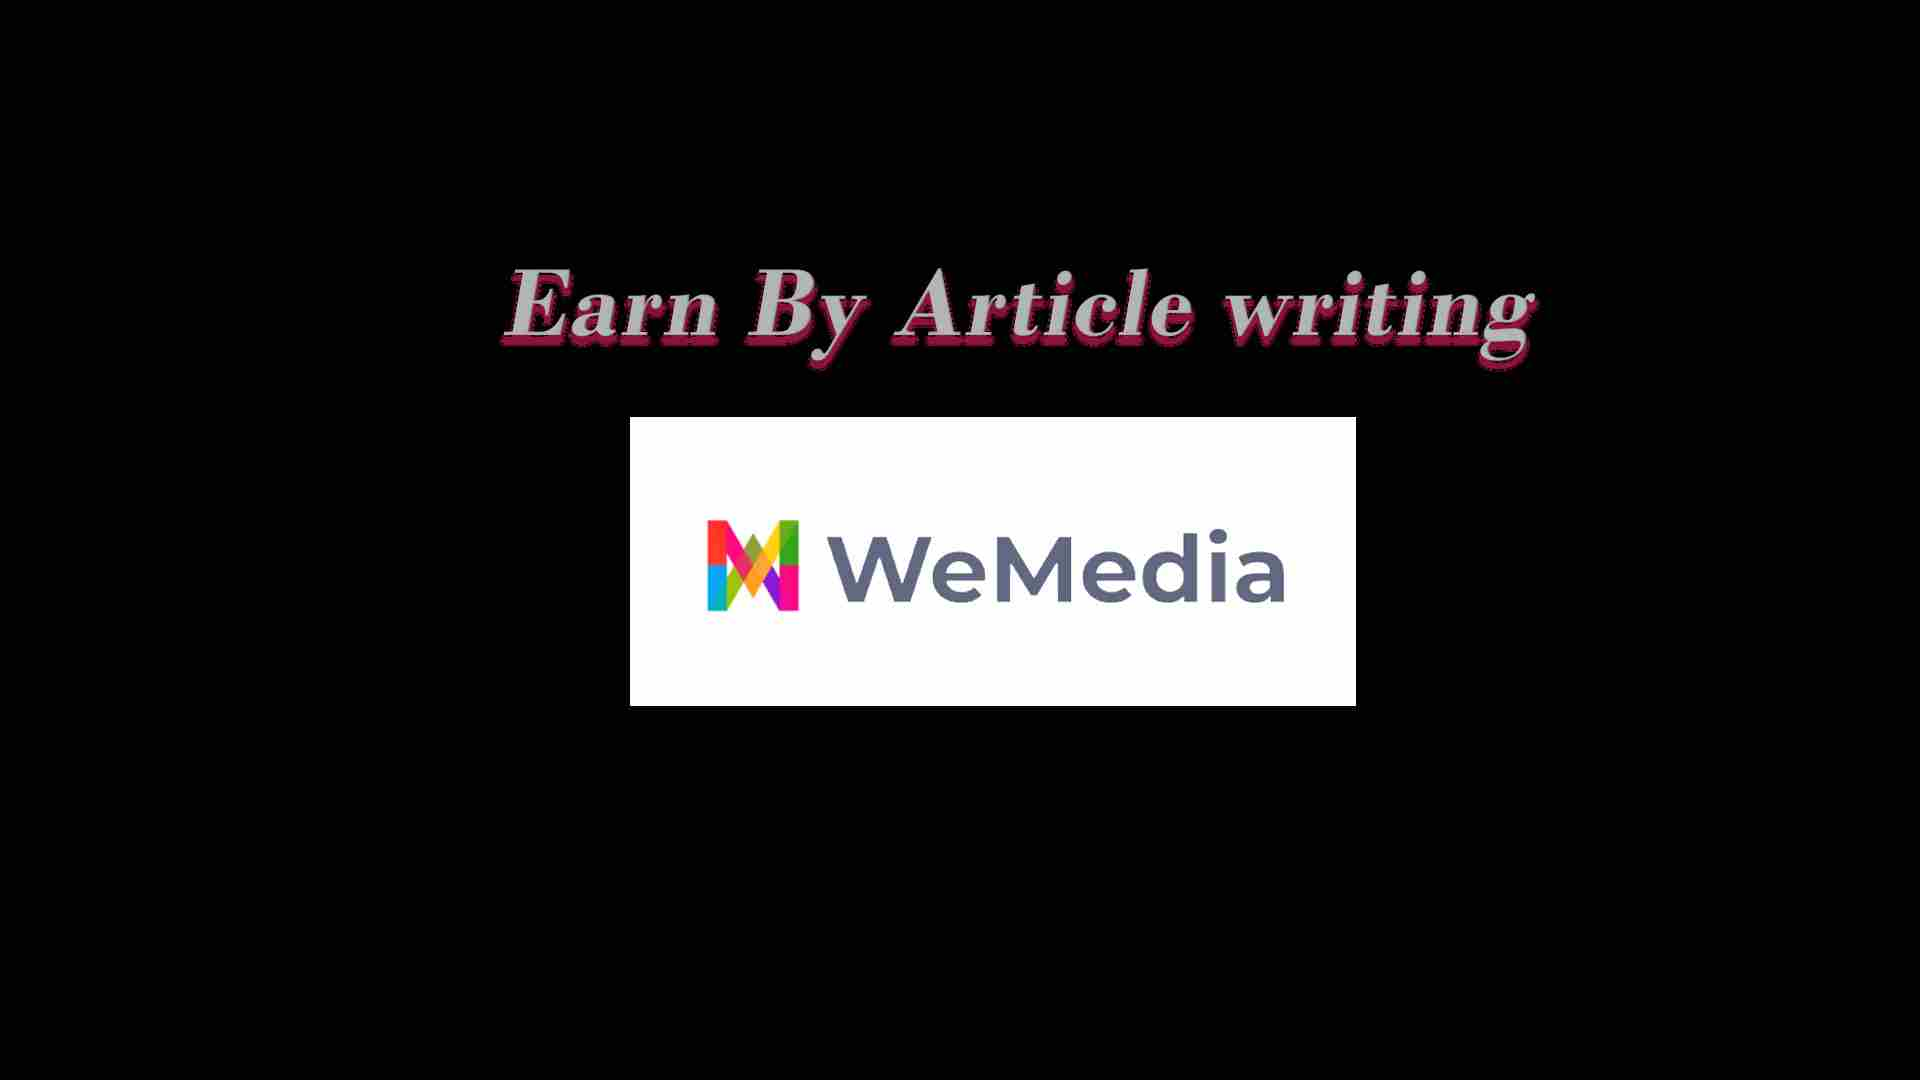 earn by article writing,rozbuzz wemedia